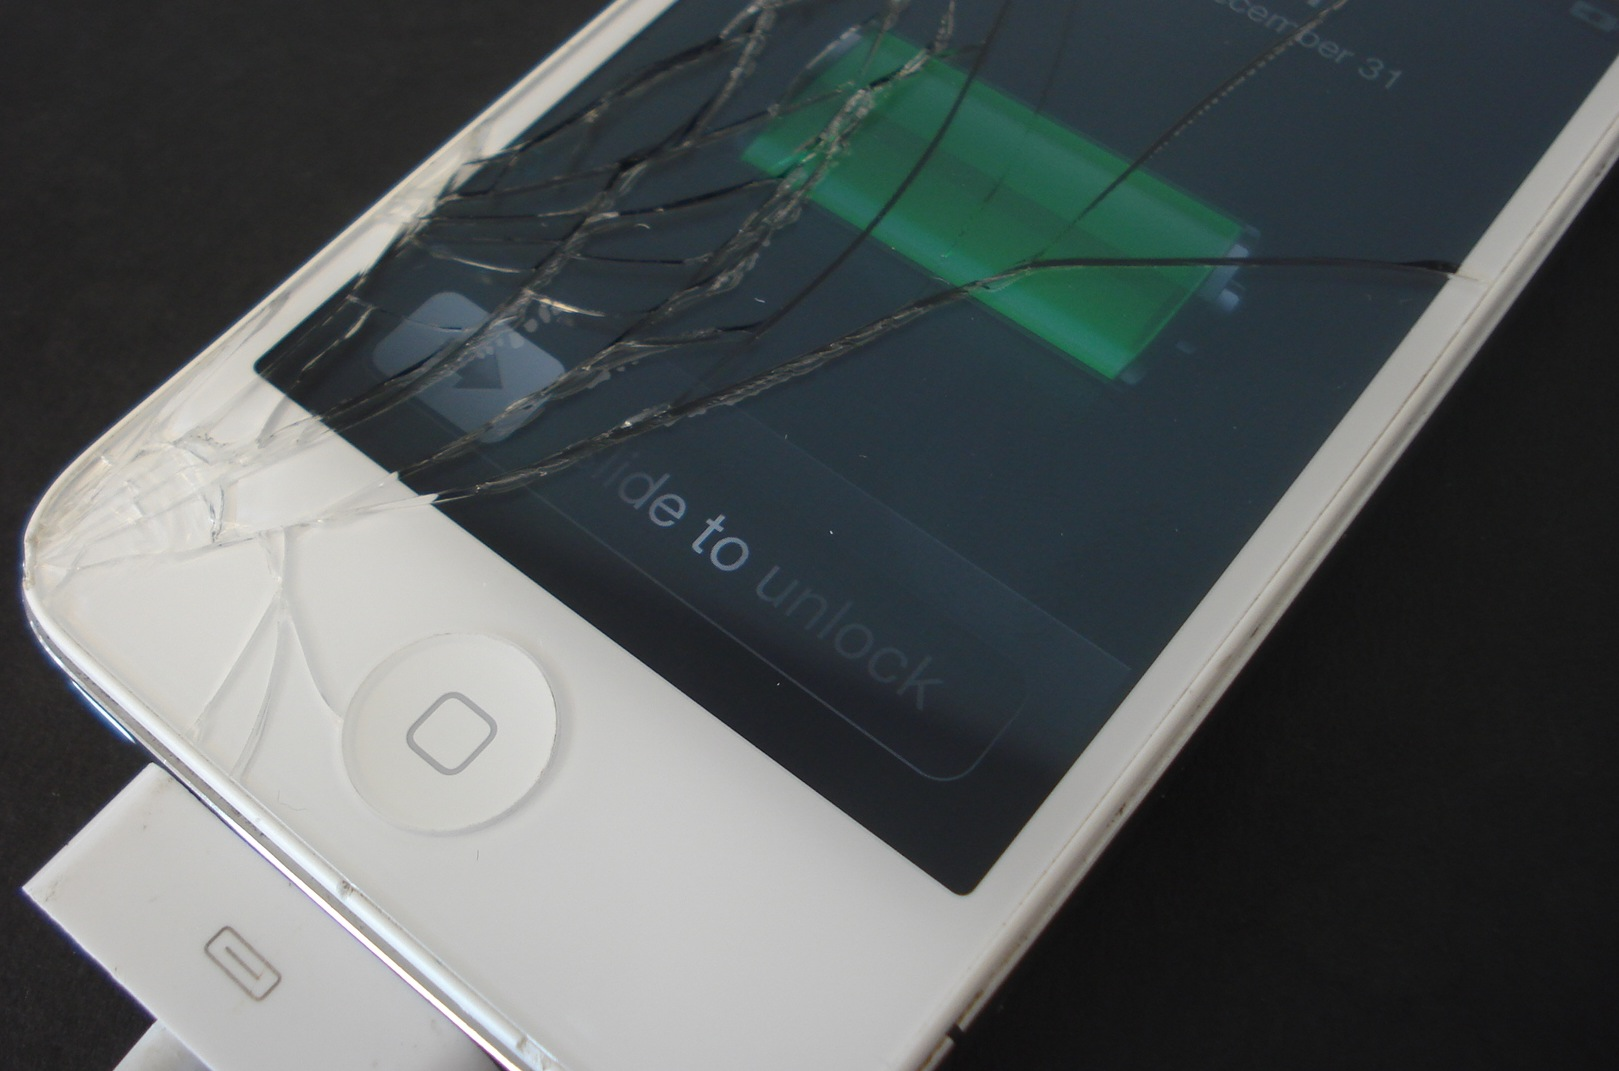 iPhone Catches Fire in Student's Pocket